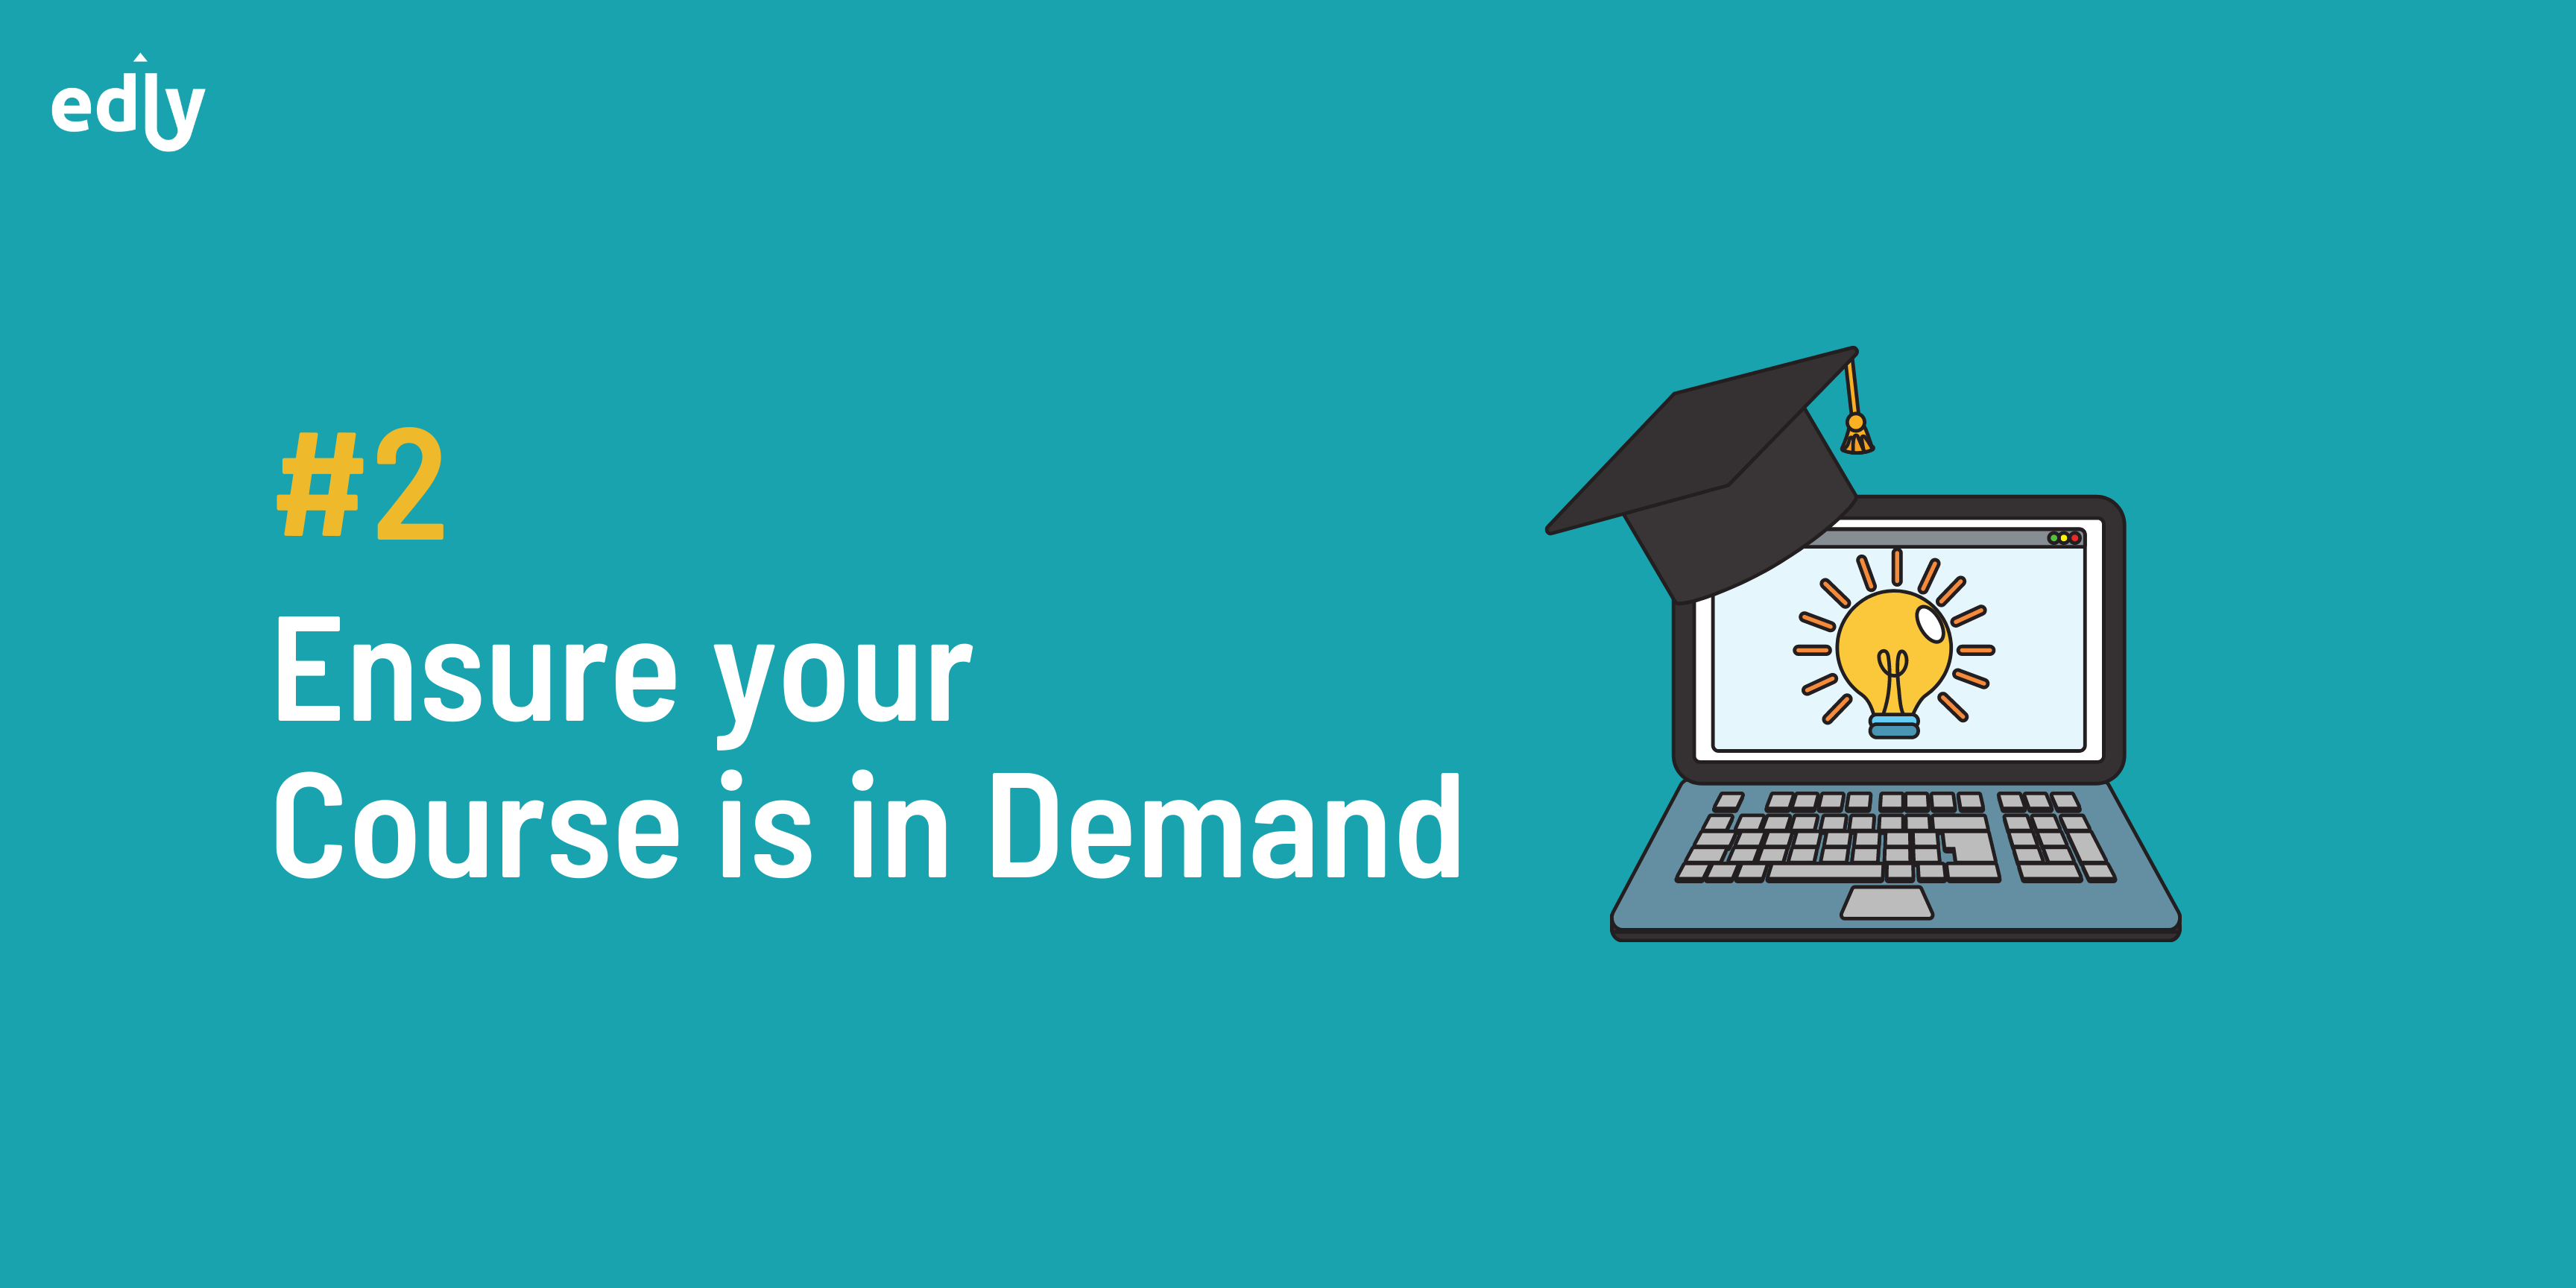 Ensure your course is in demand